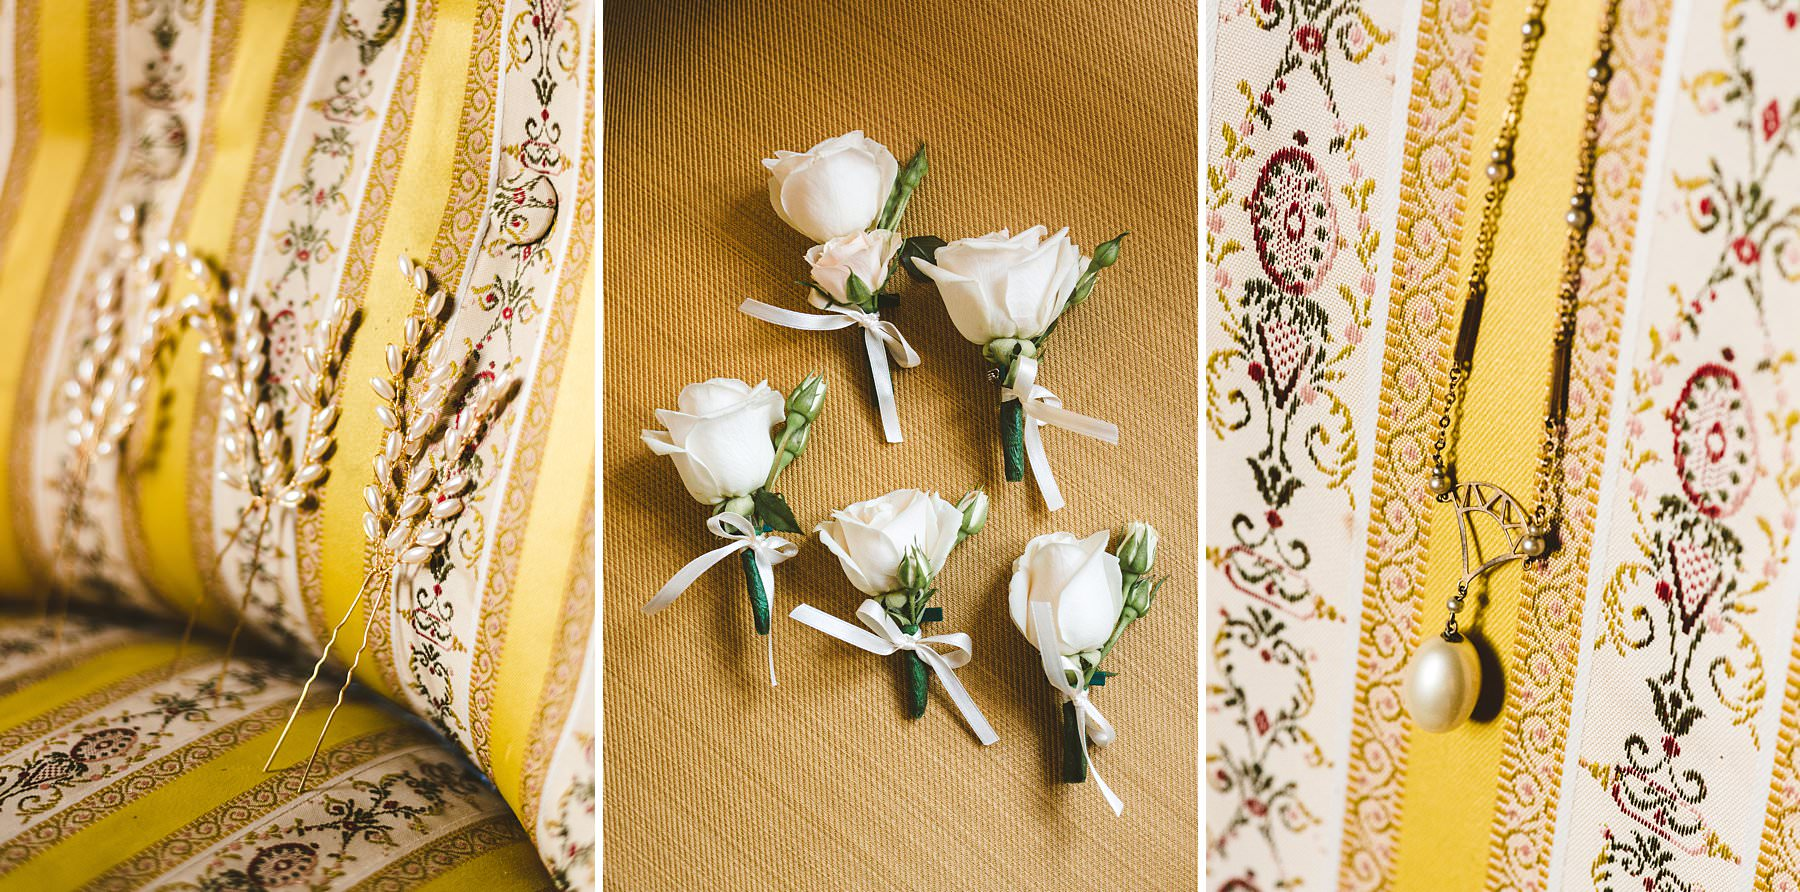 Creative and modern destination wedding photographer in Italy. Australian couple international wedding in Umbria at Villa Monte Solare. Elegant accessories detail shoot during preparation of bride and groom